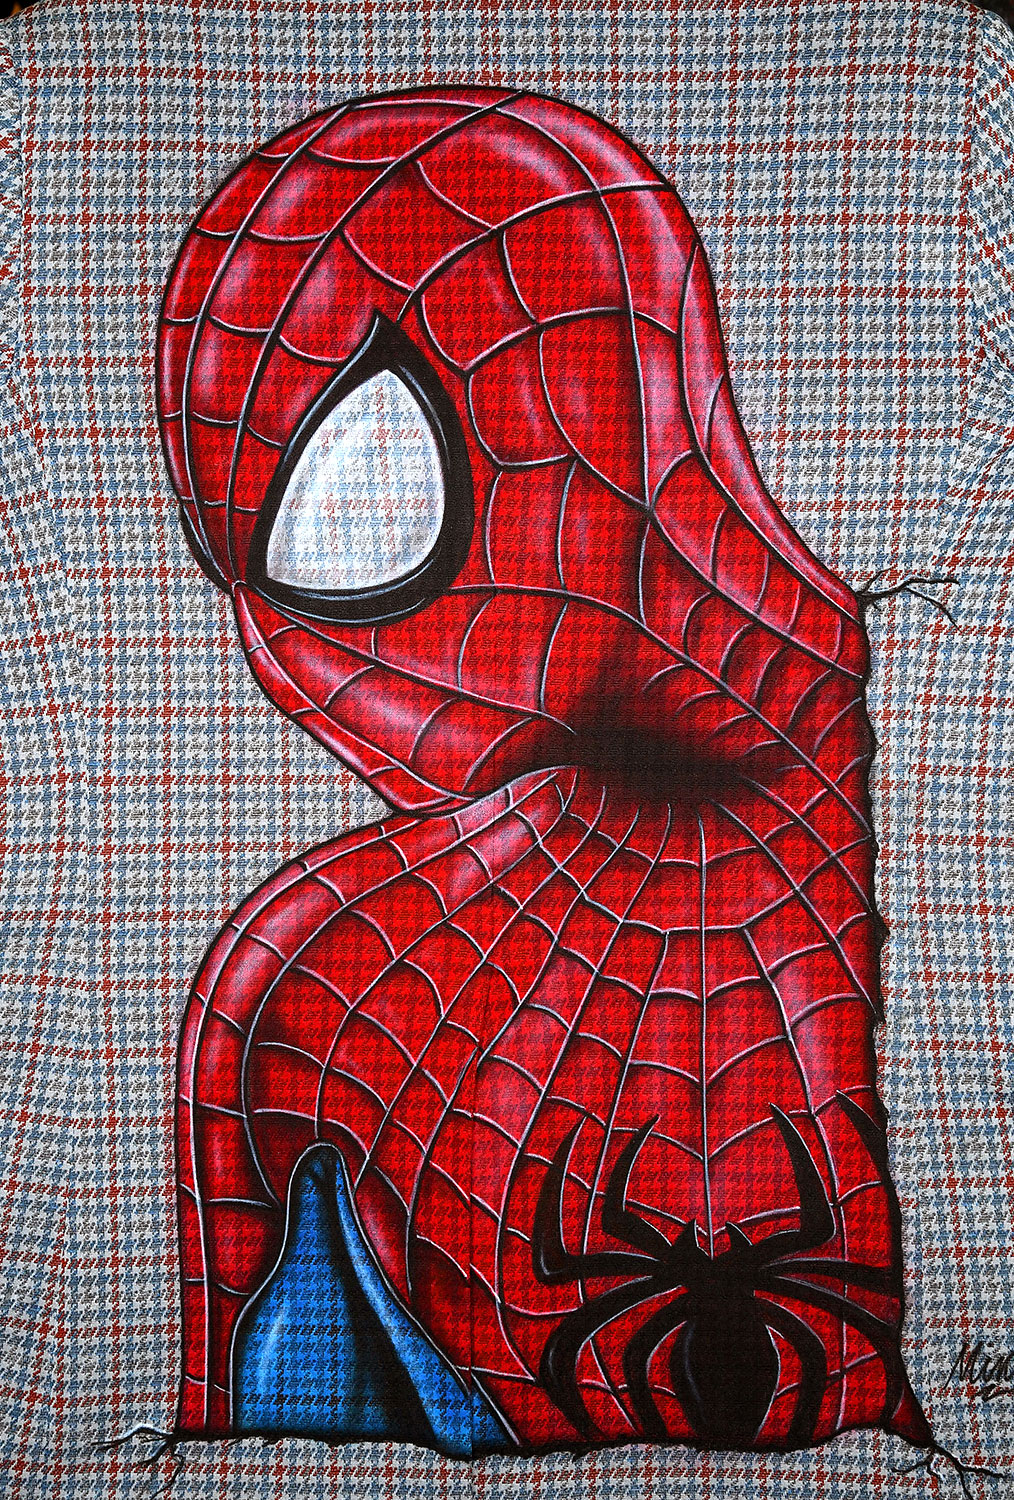 """Spider-Man"" by Richard Mink @jackedupairbrush"